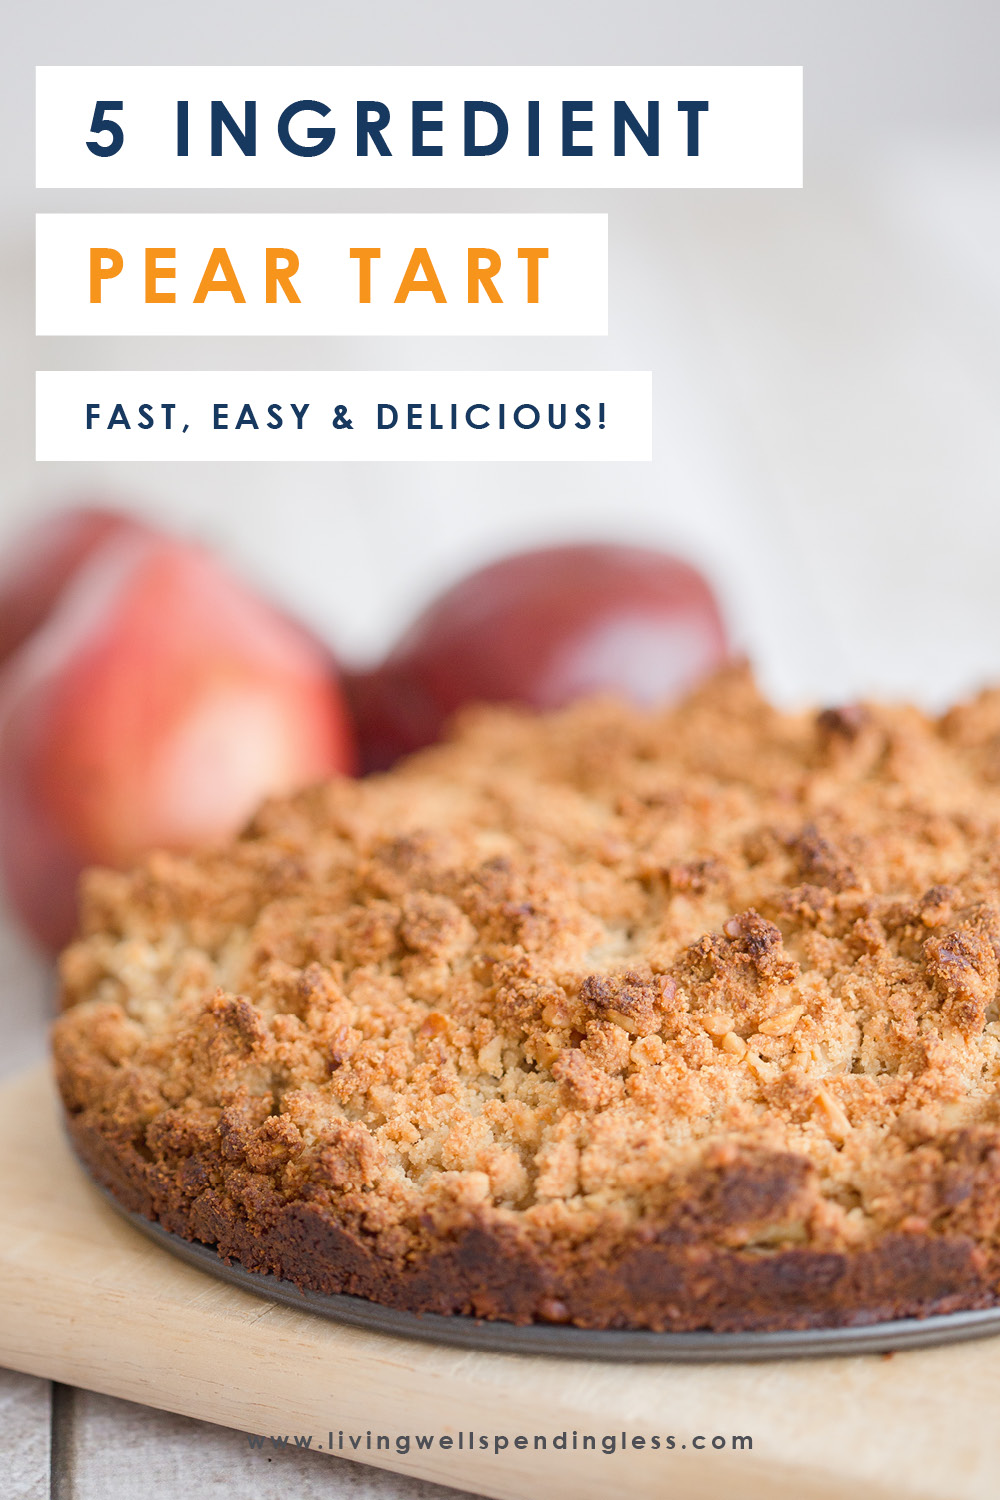 Ready for fall dessert that doesn't involve any pumpkins? Not only does this insanely amazing Pear Tart come together fast (less than 40 minutes from start to finish) AND call for just 5 easy ingredients, it's absolutely DELICIOUS! Serve warm with vanilla ice cream for a sweet treat your whole family will love! #recipes #dessertrecipes #5ingredientrecipes #pearrecipes #easyrecipes